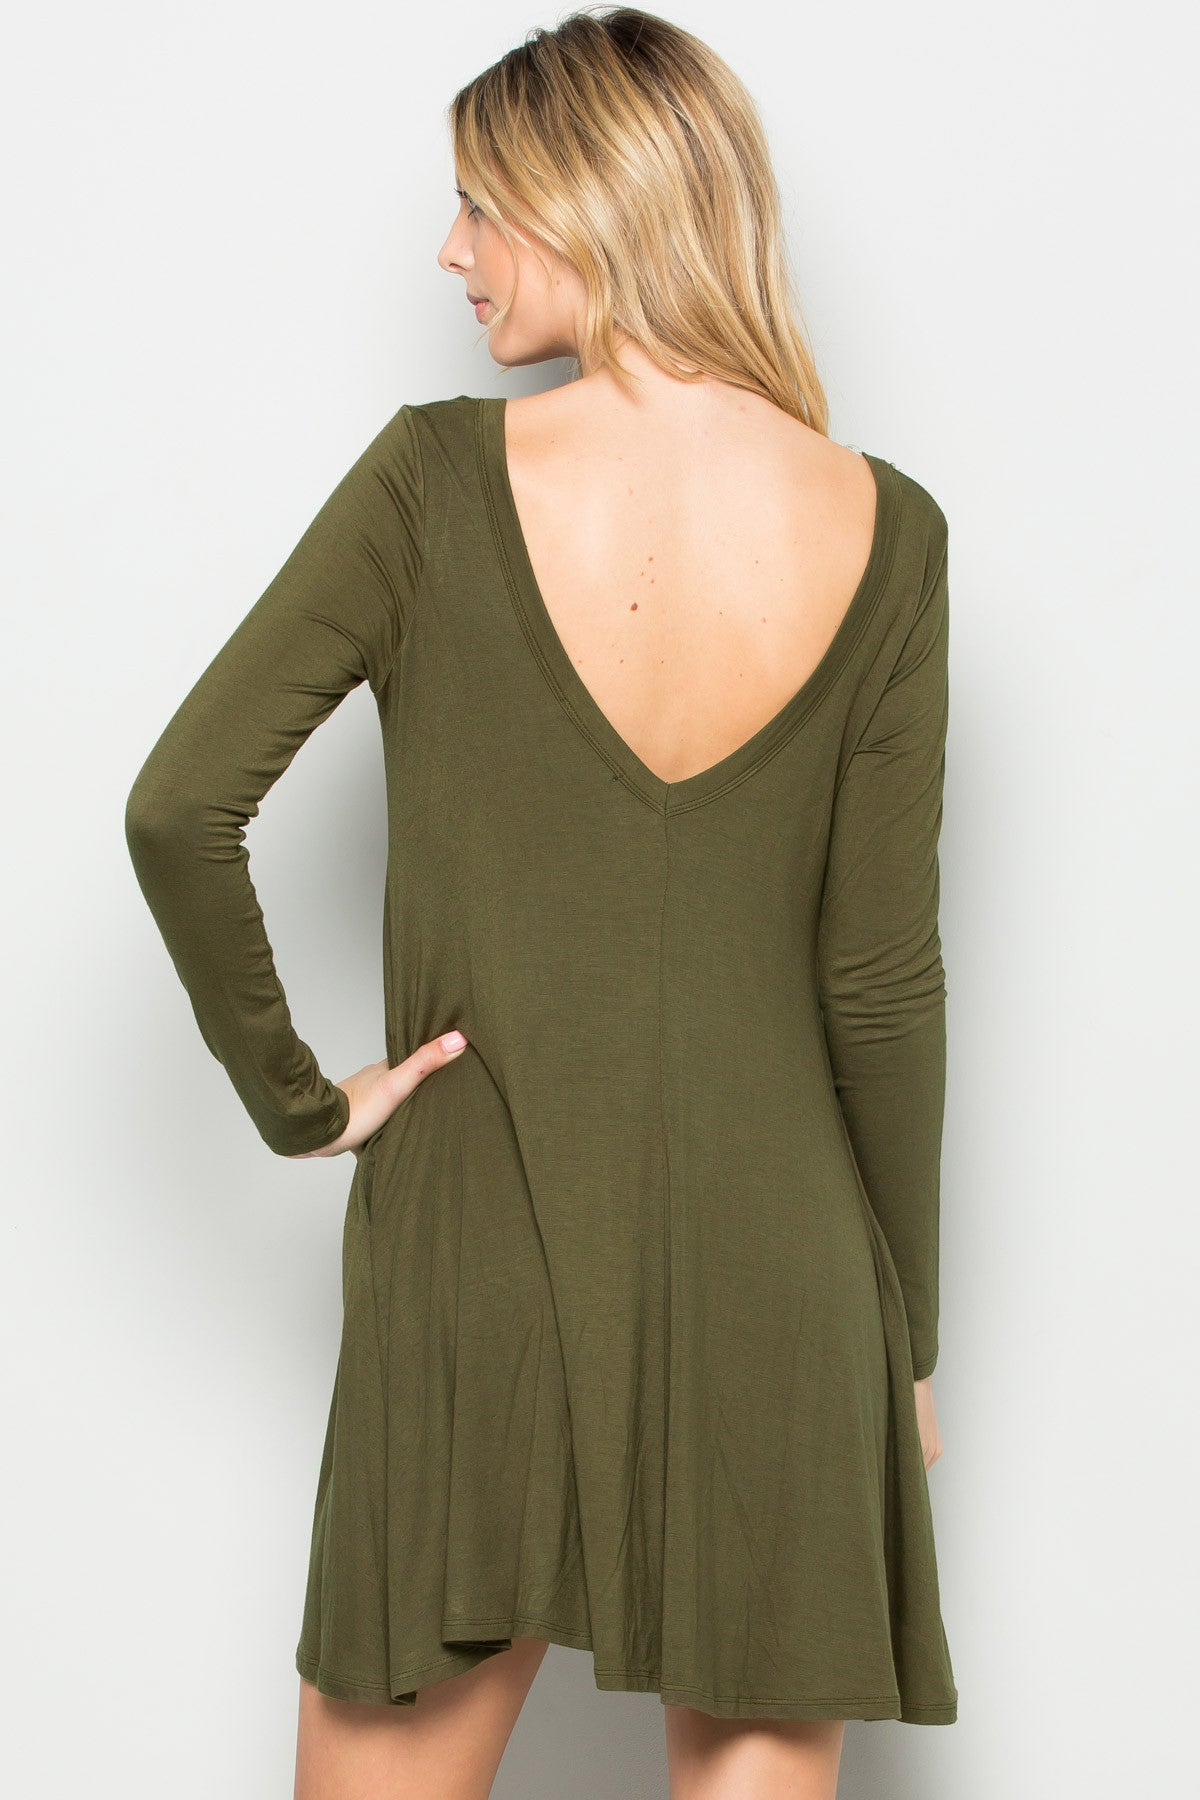 Military Green Long Sleeve Open Back Swing Dress - Dresses - My Yuccie - 8